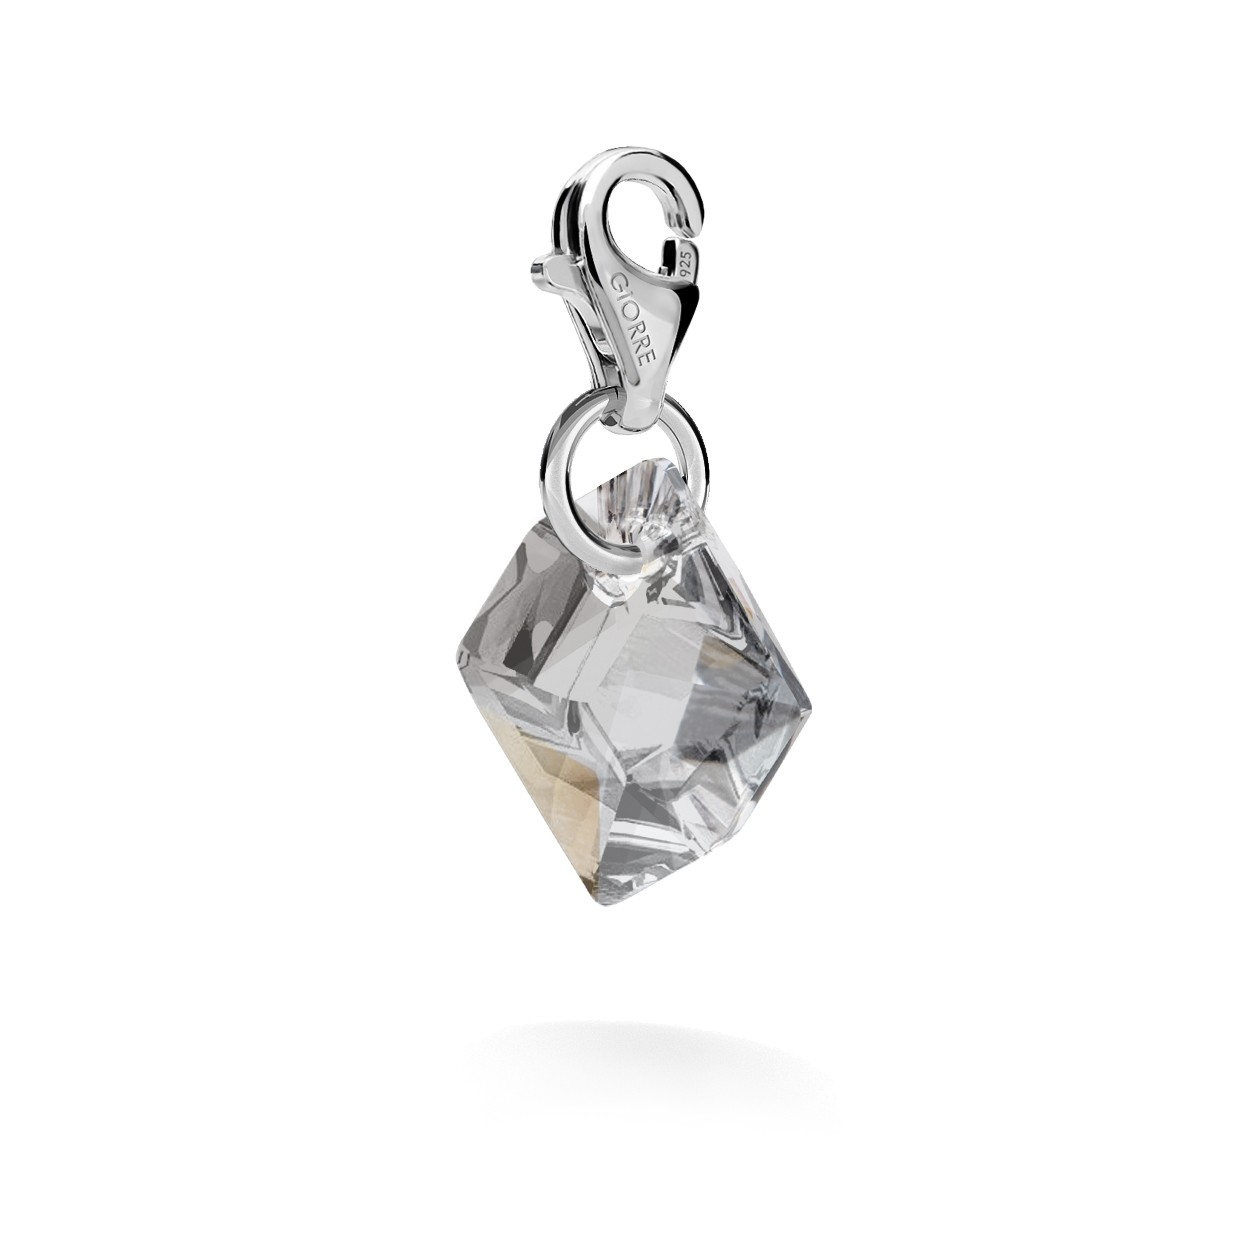 CHARM 50, SWAROVSKI 6680 MM 14 CRYSTAL, STERLING SILVER (925) RHODIUM OR GOLD PLATED